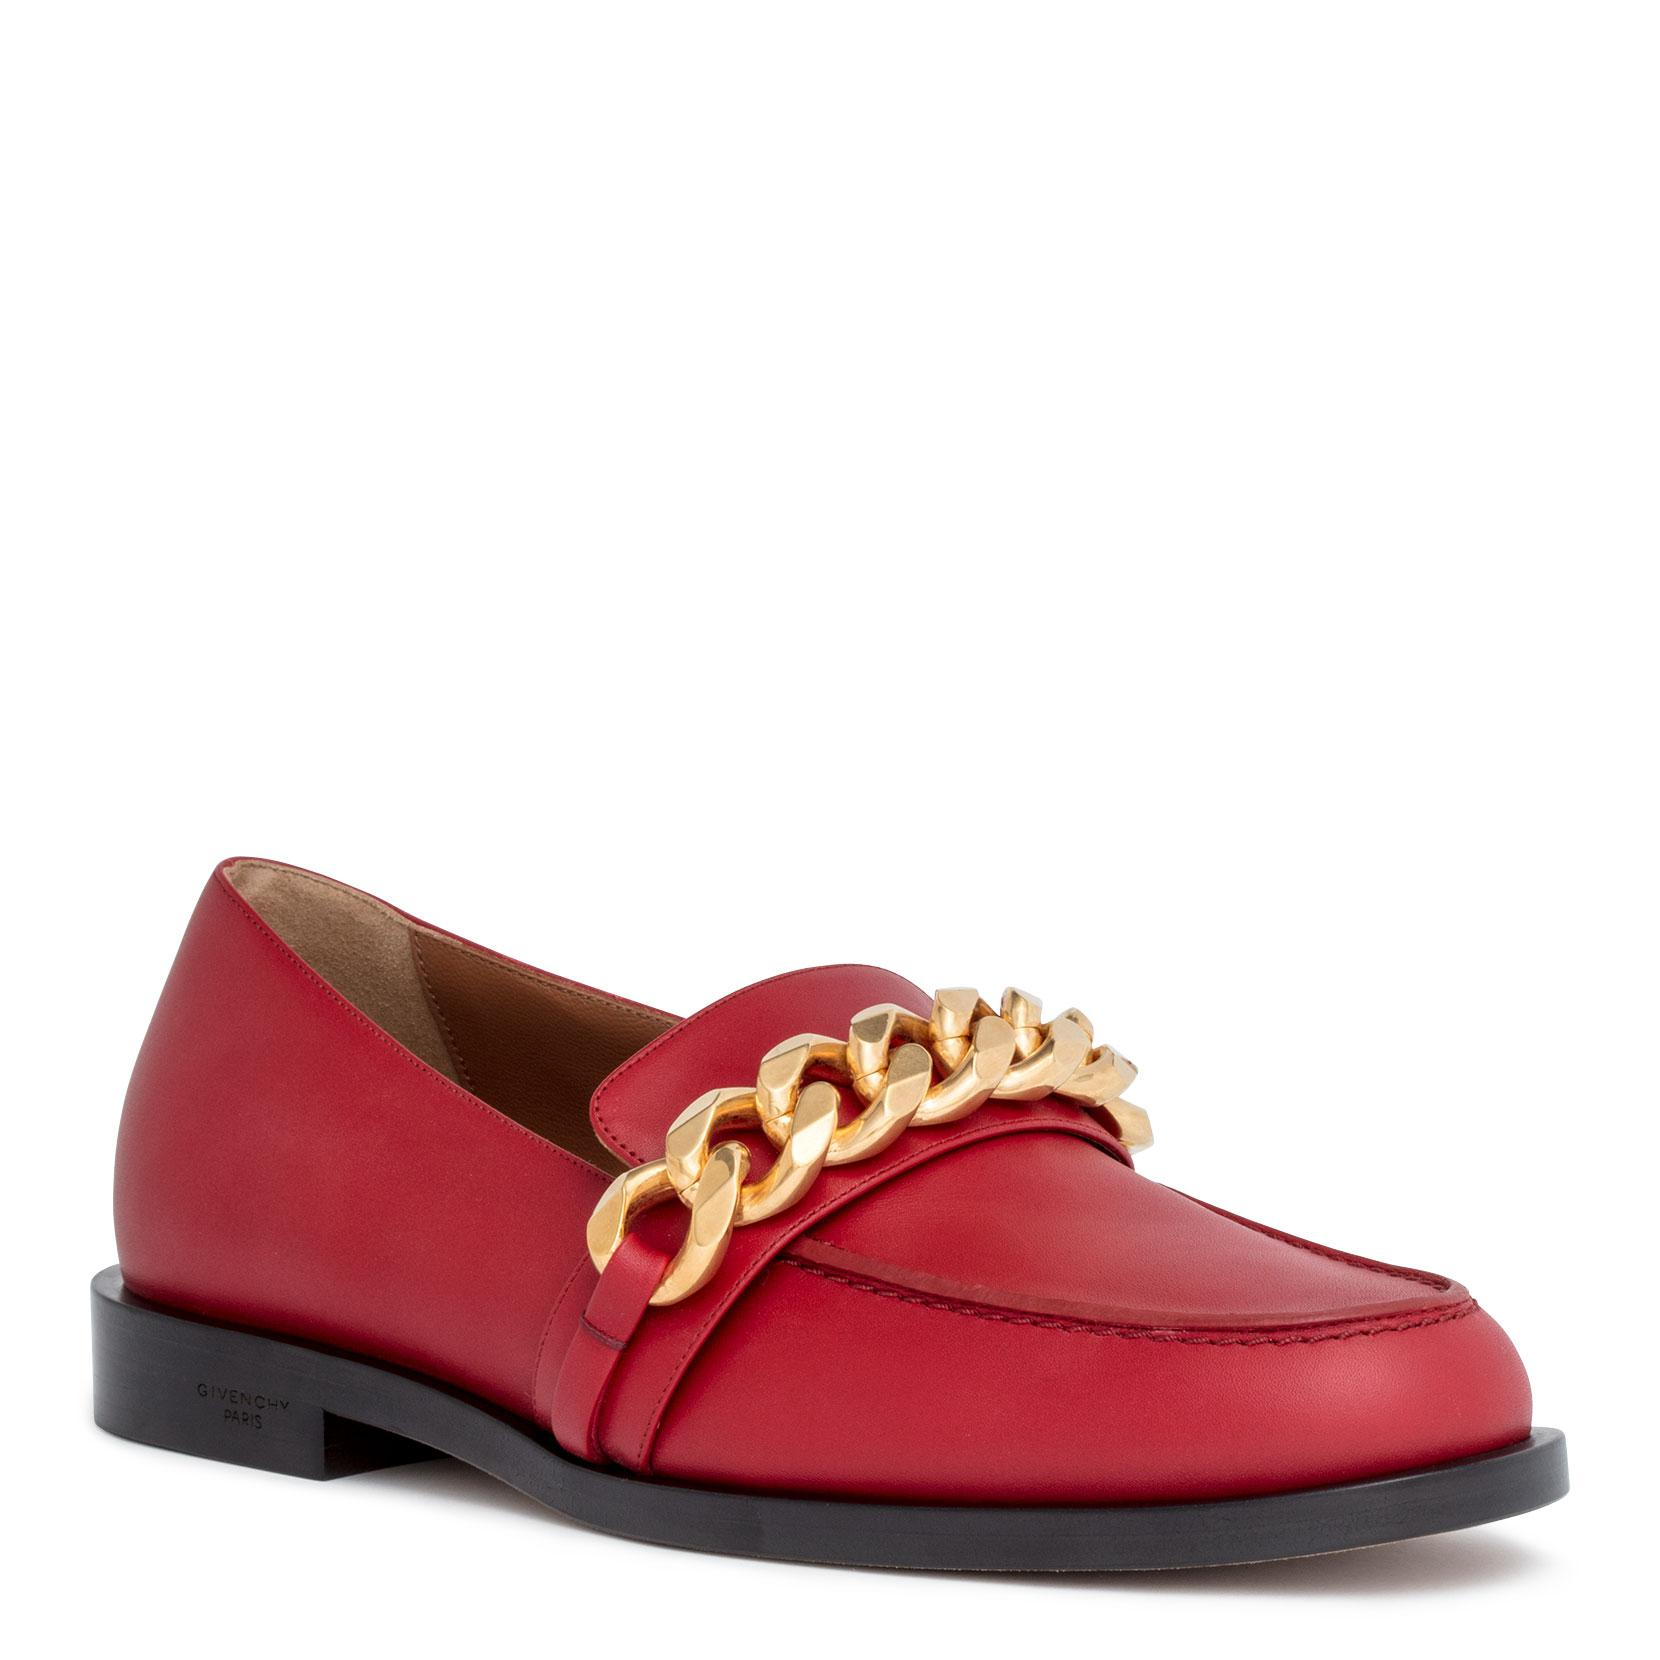 Red leather chain loafer Givenchy 0Wxiid2P